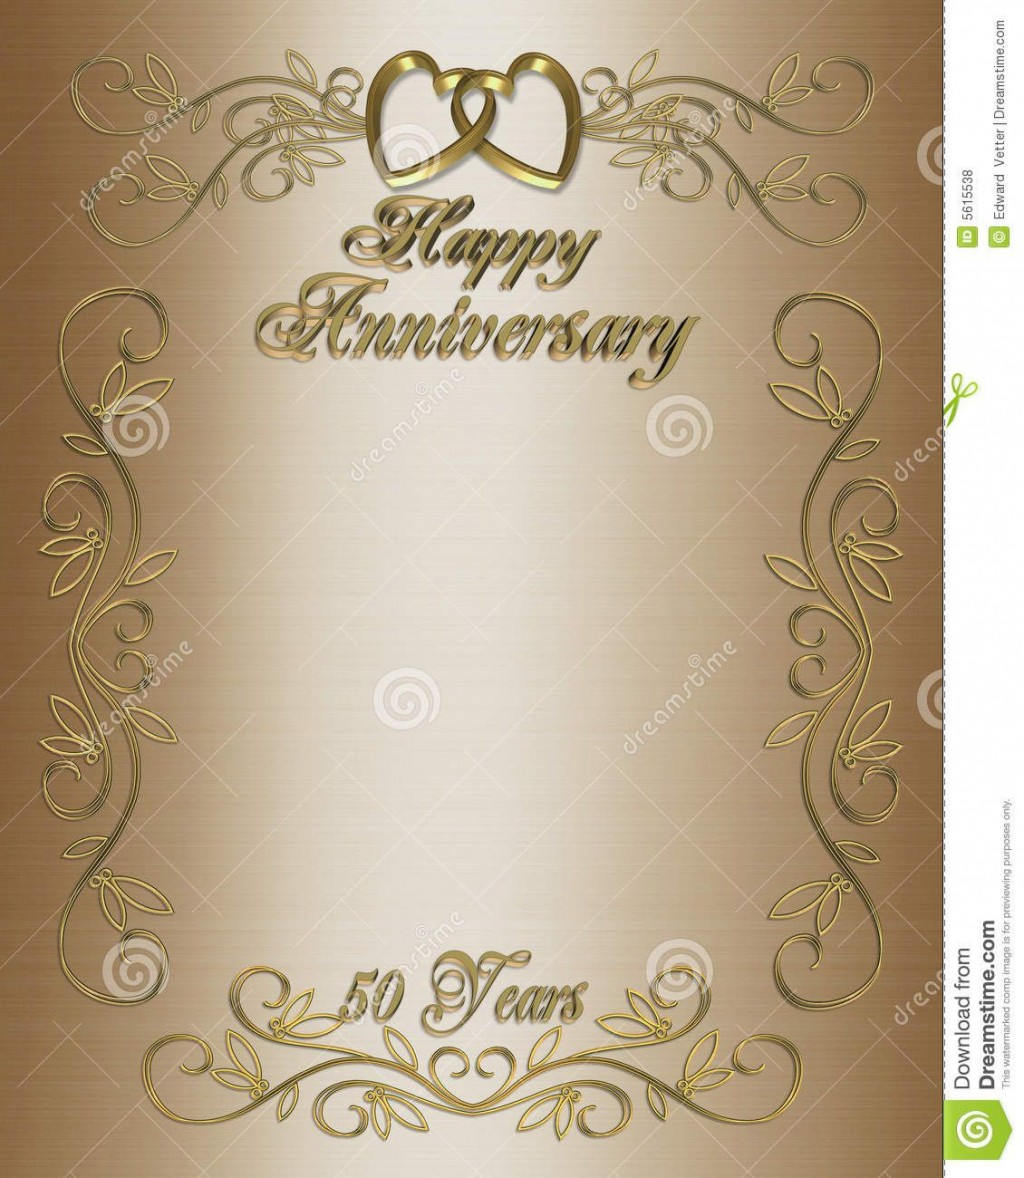 002 Magnificent 50th Anniversary Invitation Template Free Download Highest Quality  Golden WeddingLarge